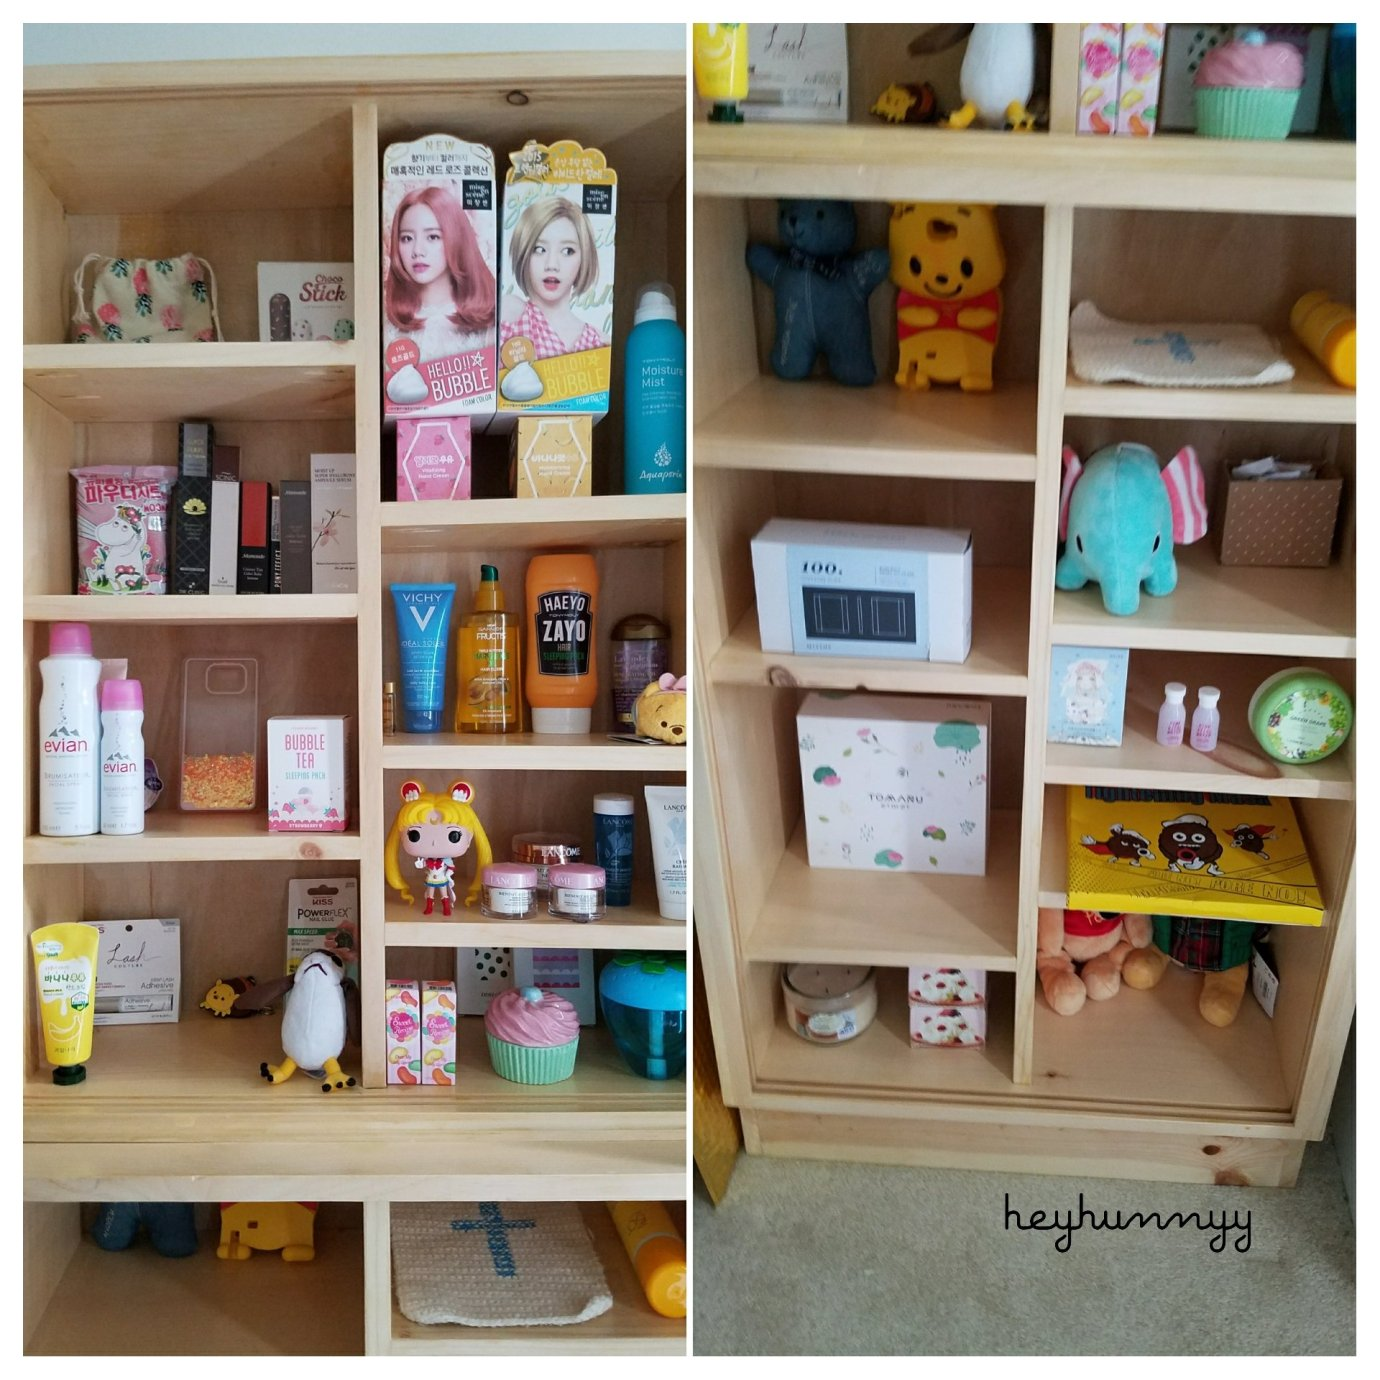 ::MAKEUP SHELF:: Custom Built Makeup Shelf! heyhunnyy